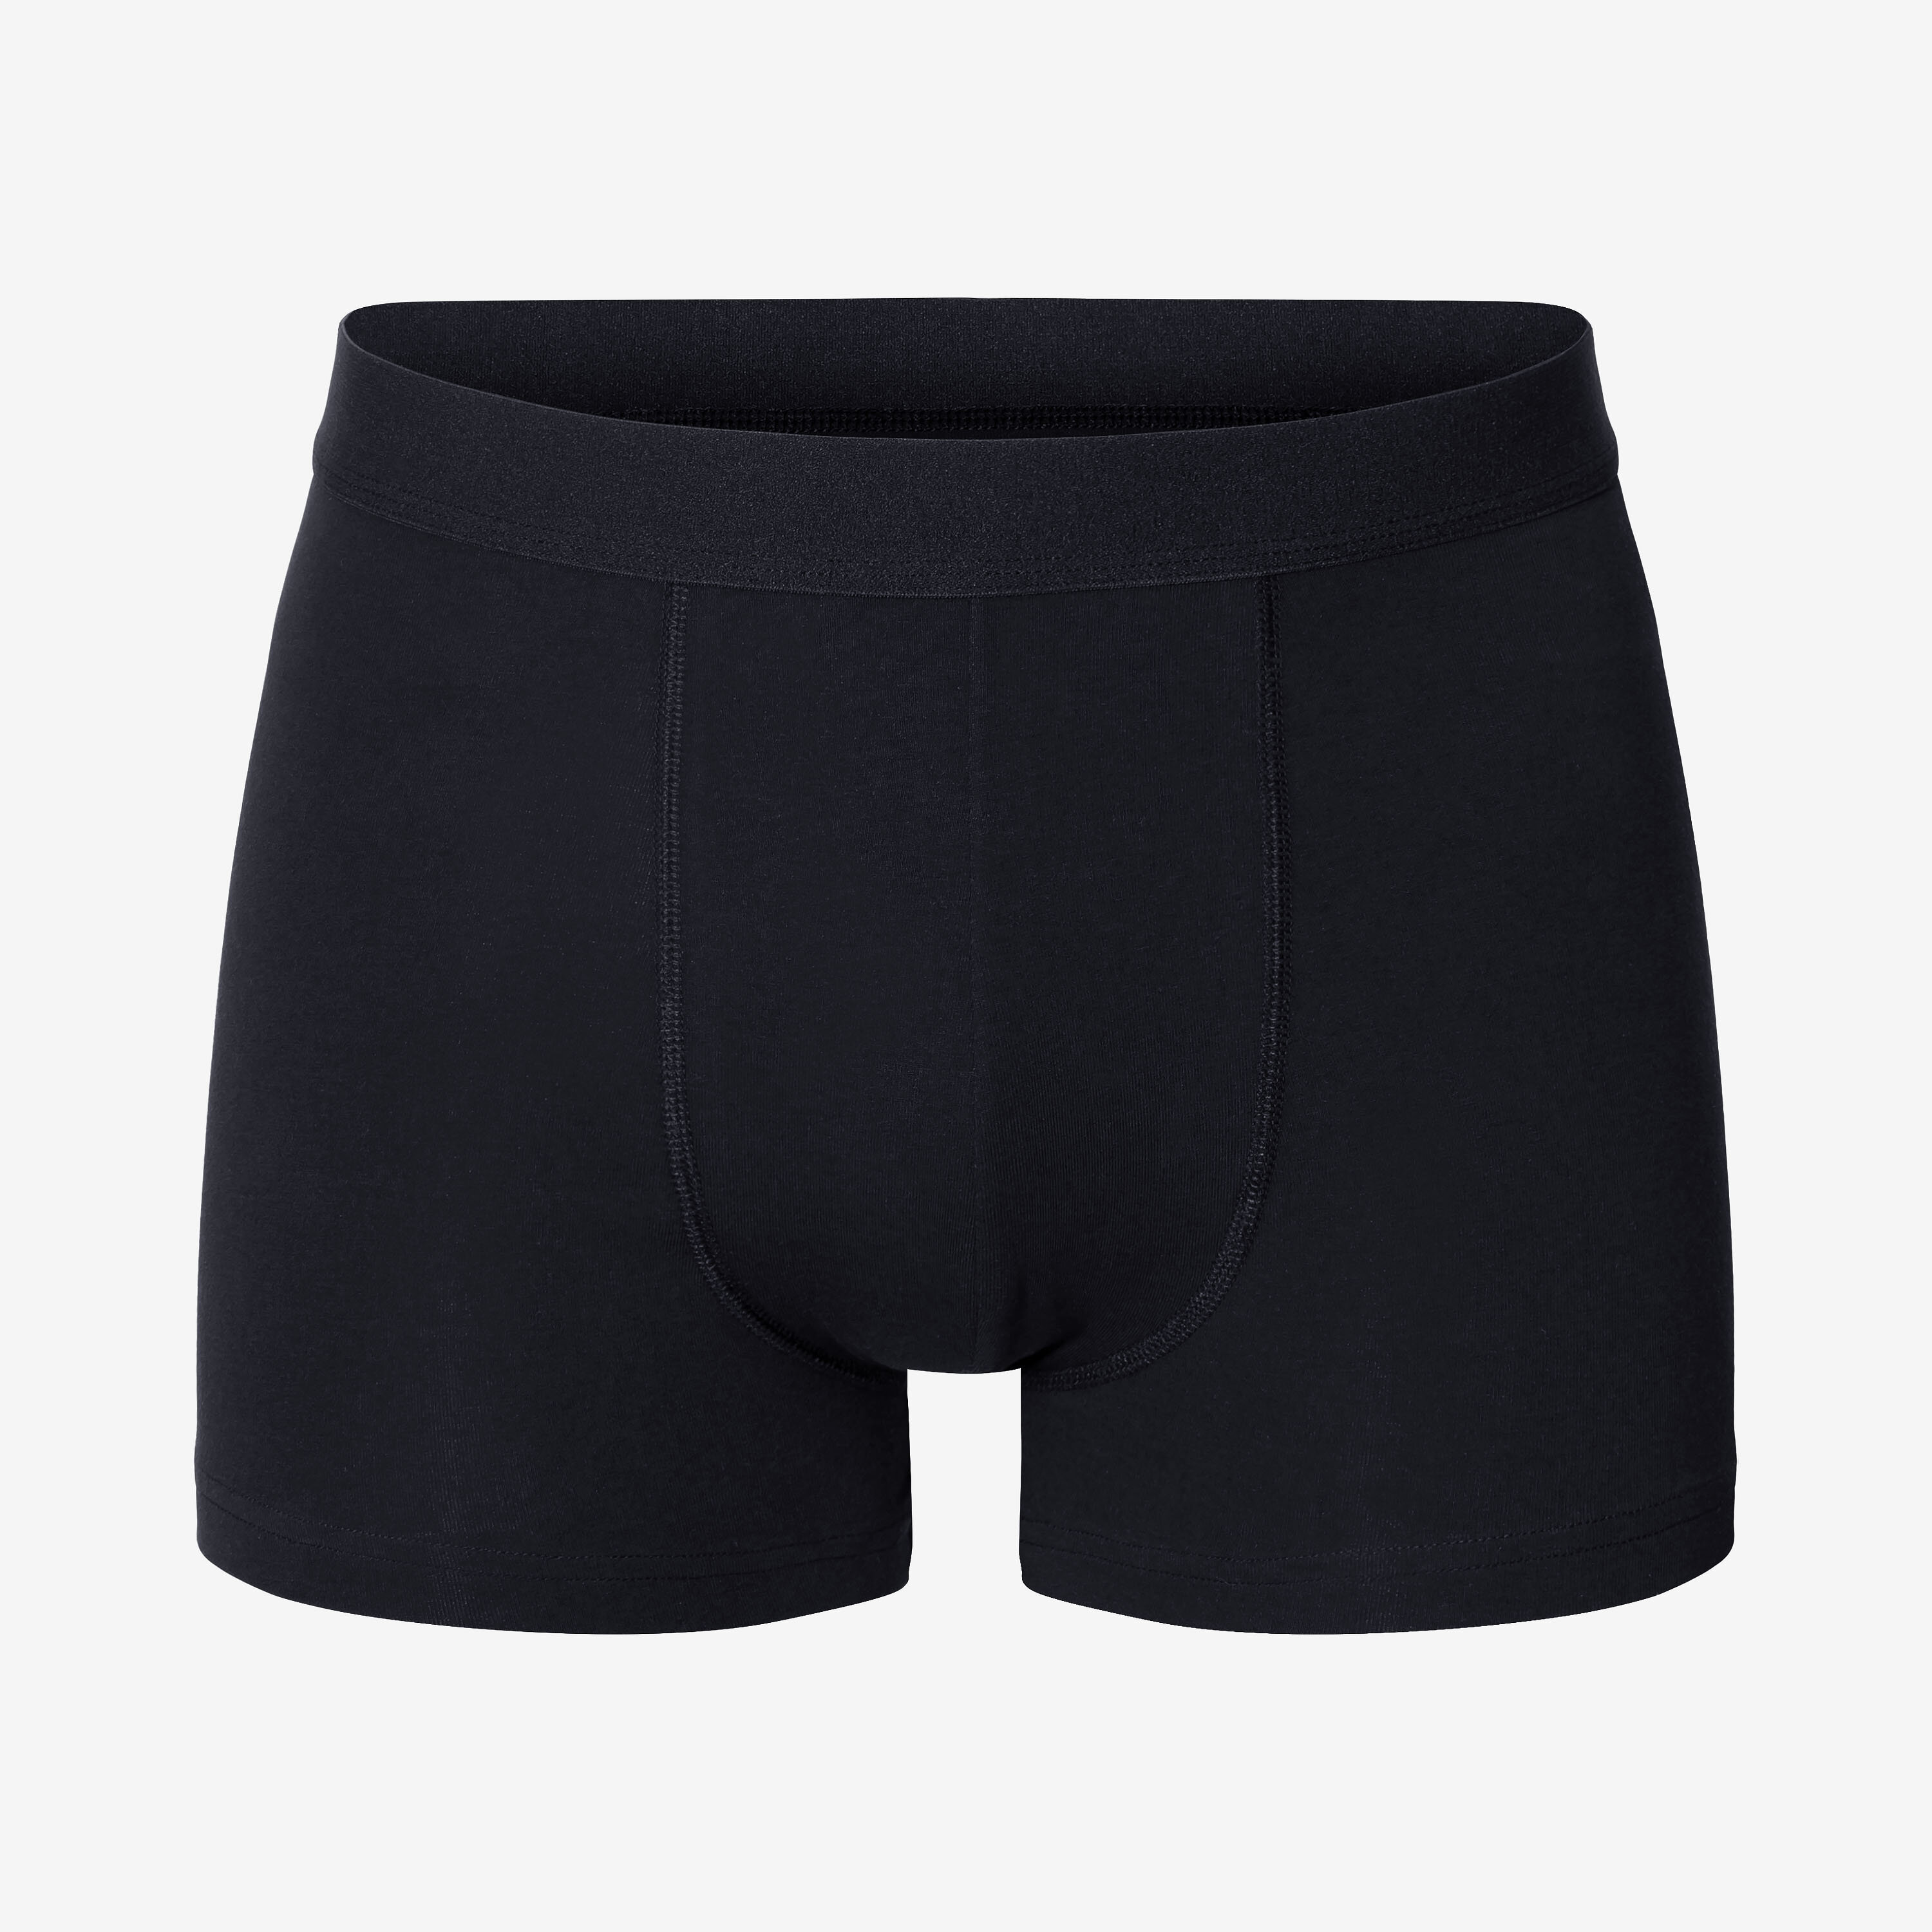 202204_Man_Boxer-Brief_dark-navy_CO-A